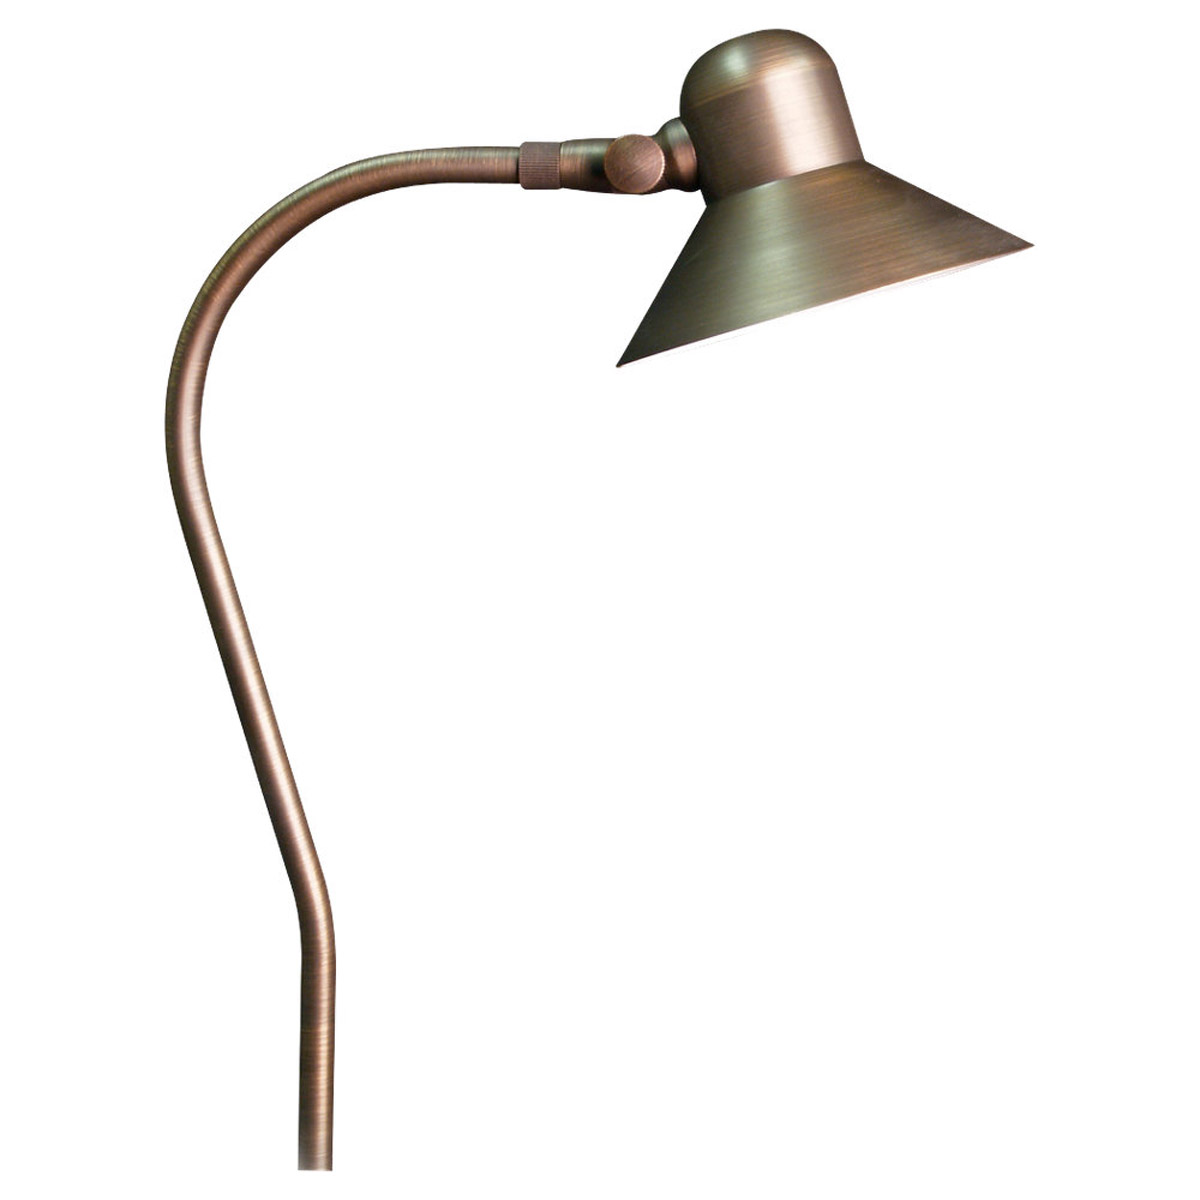 Sea Gull Lighting Imperial 1 Light Landscape Path Light in Weathered Brass 91227-147 photo